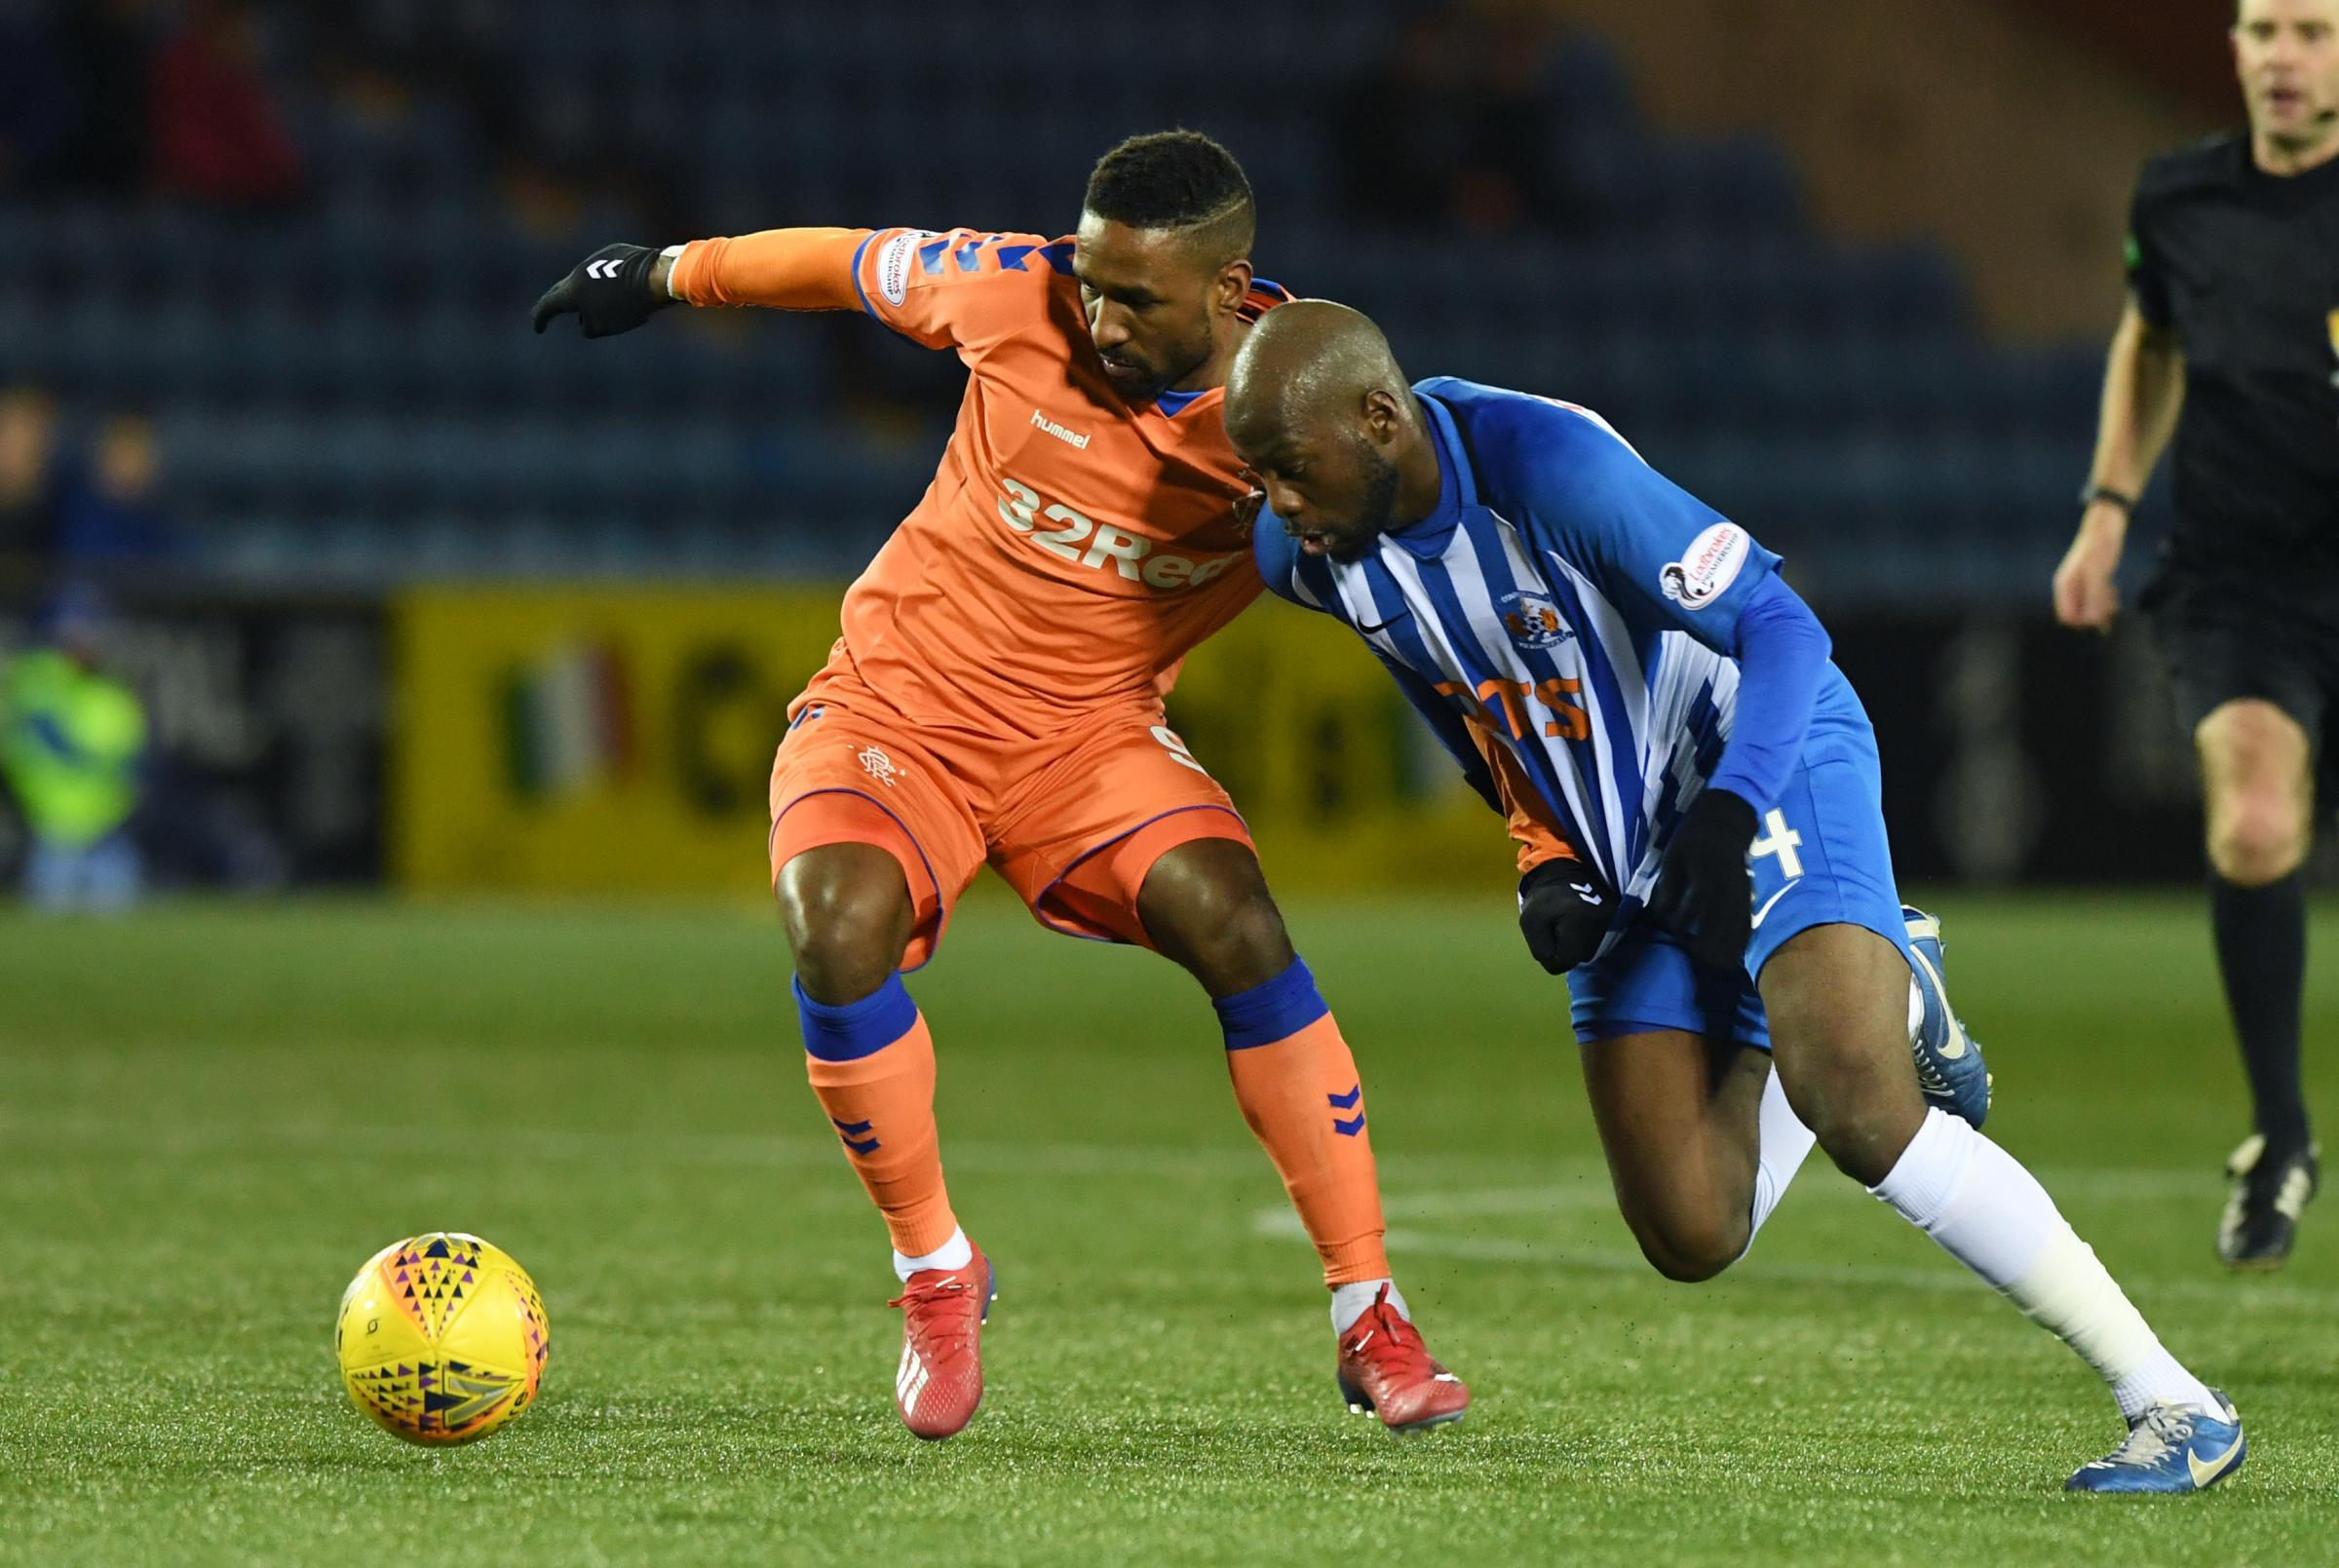 Kilmarnock midfielder Youssouf Mulumbu, right, challenges Rangers striker Jermain Defoe for the ball at Rugby Park on Saturday.